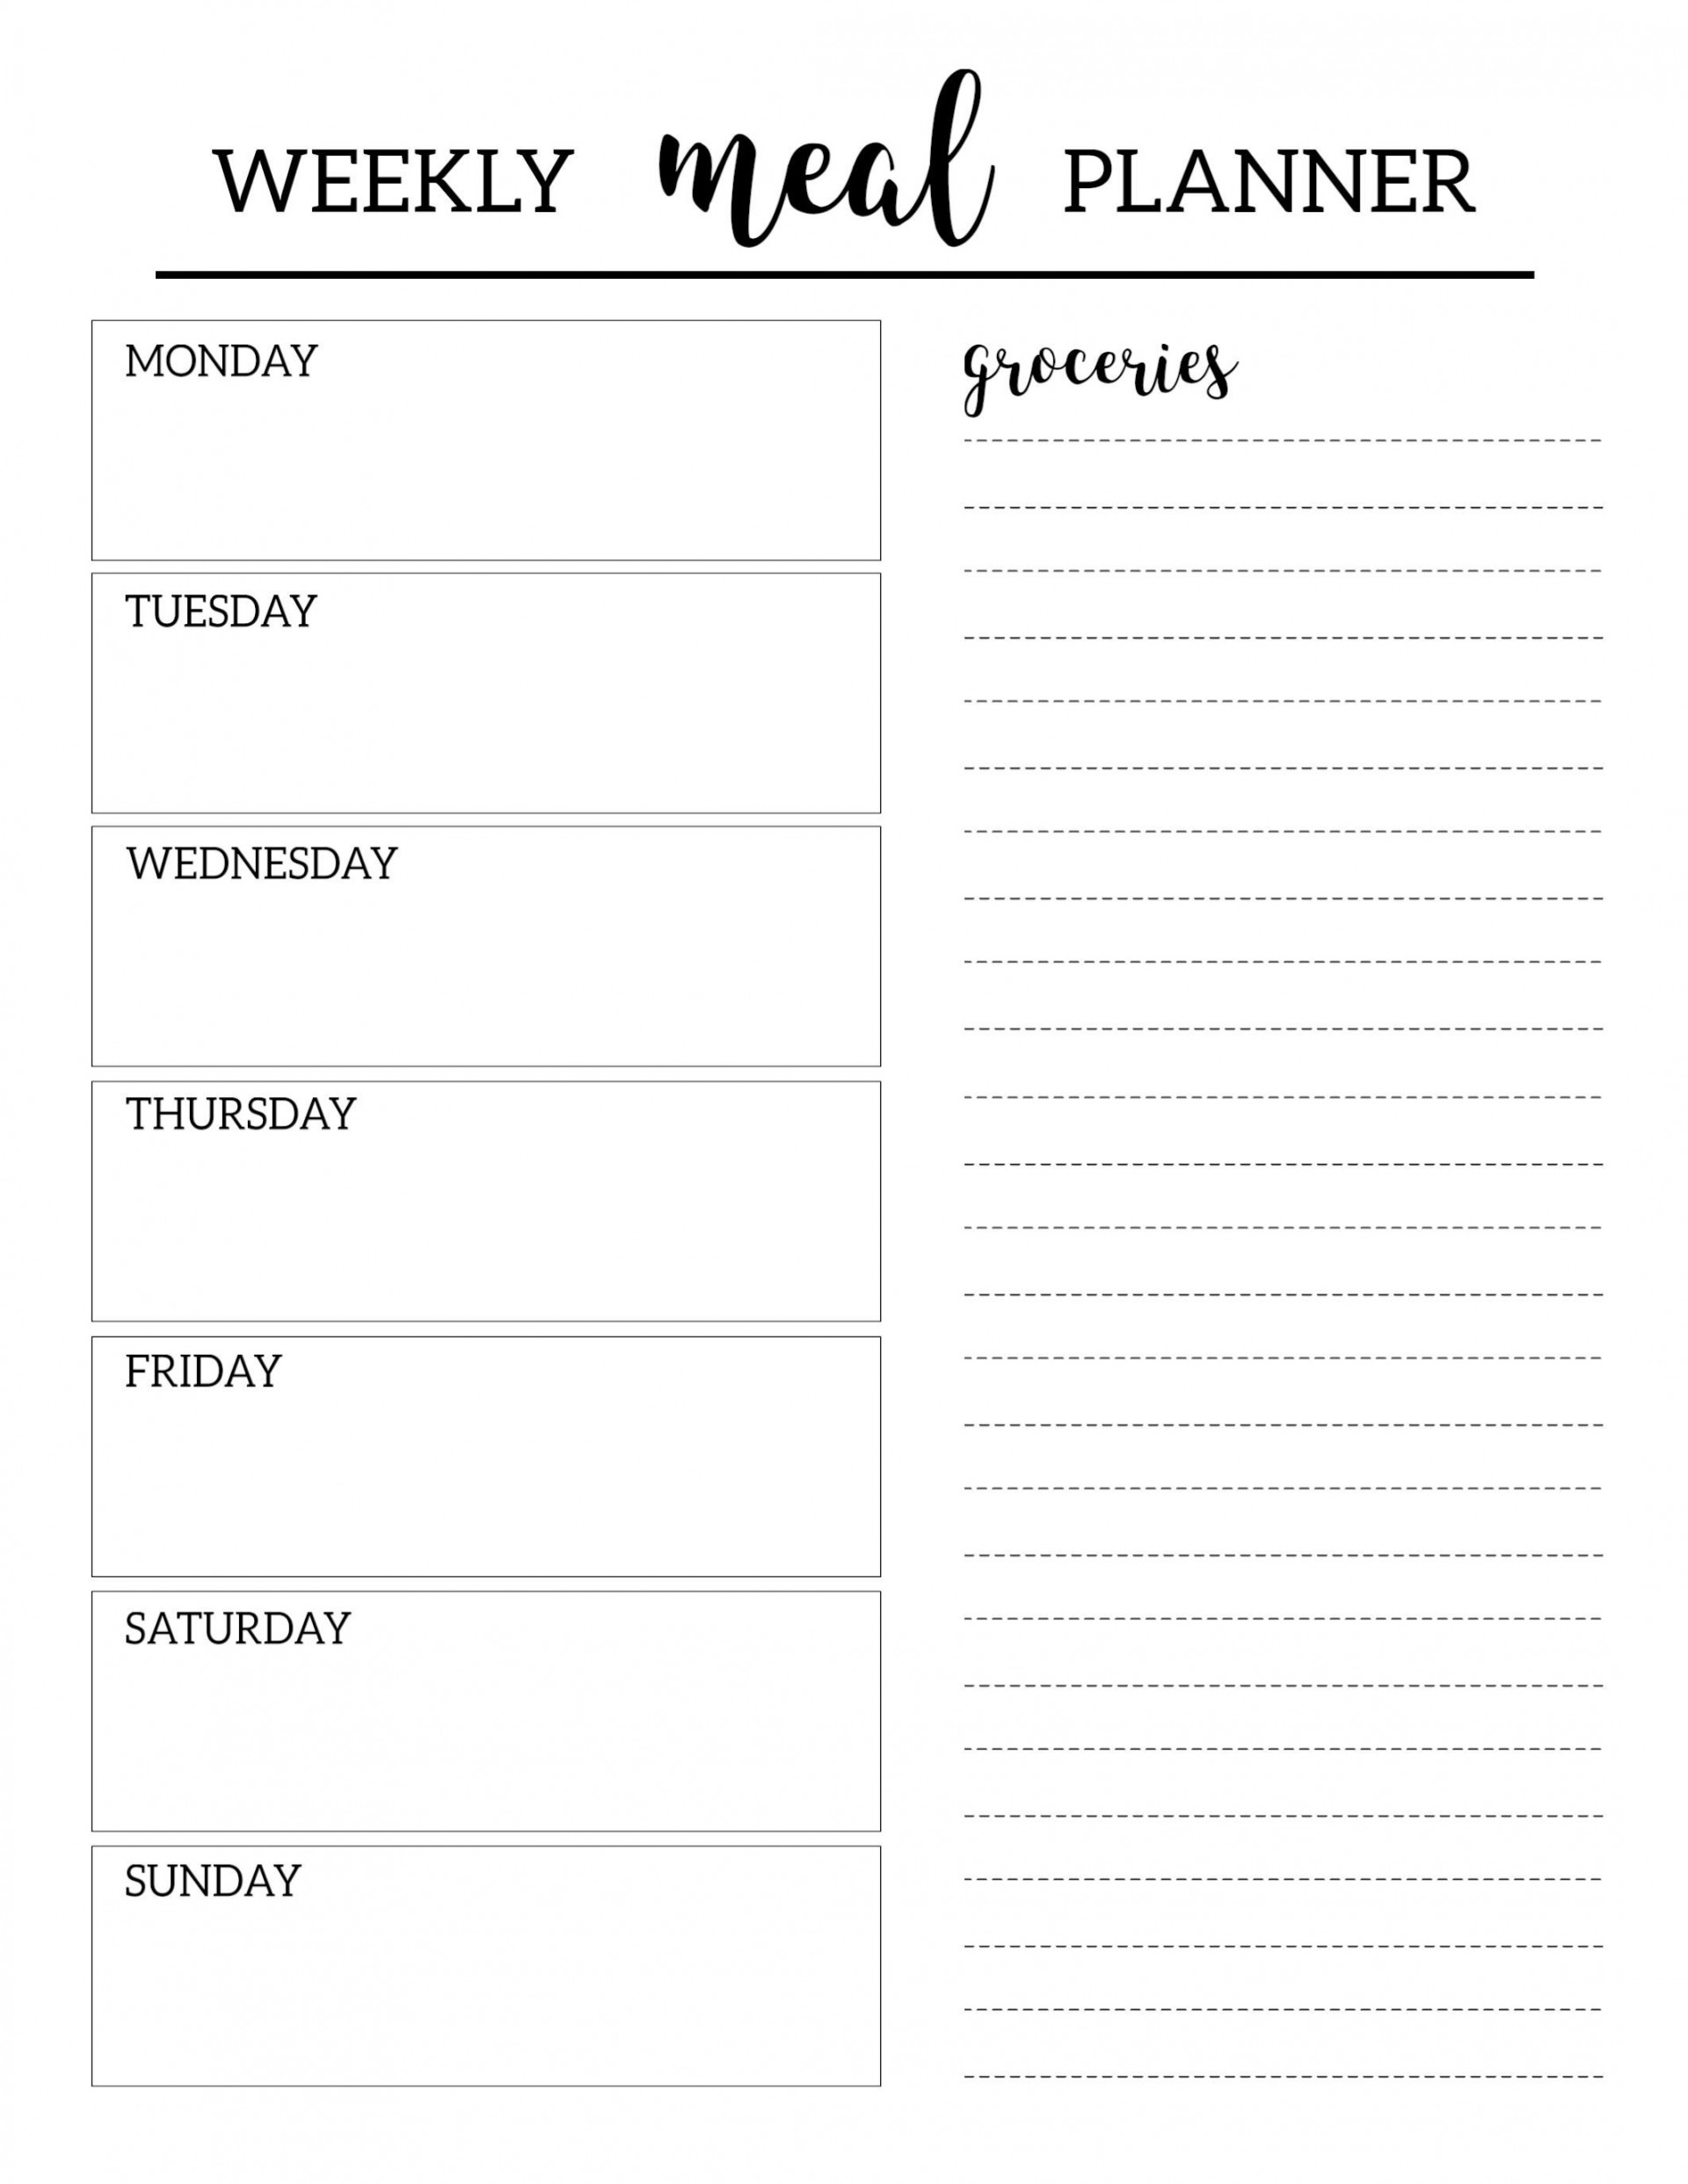 000 Surprising Free Meal Plan Template Design  Templates Easy Keto Printable Planner For Weight Los1920